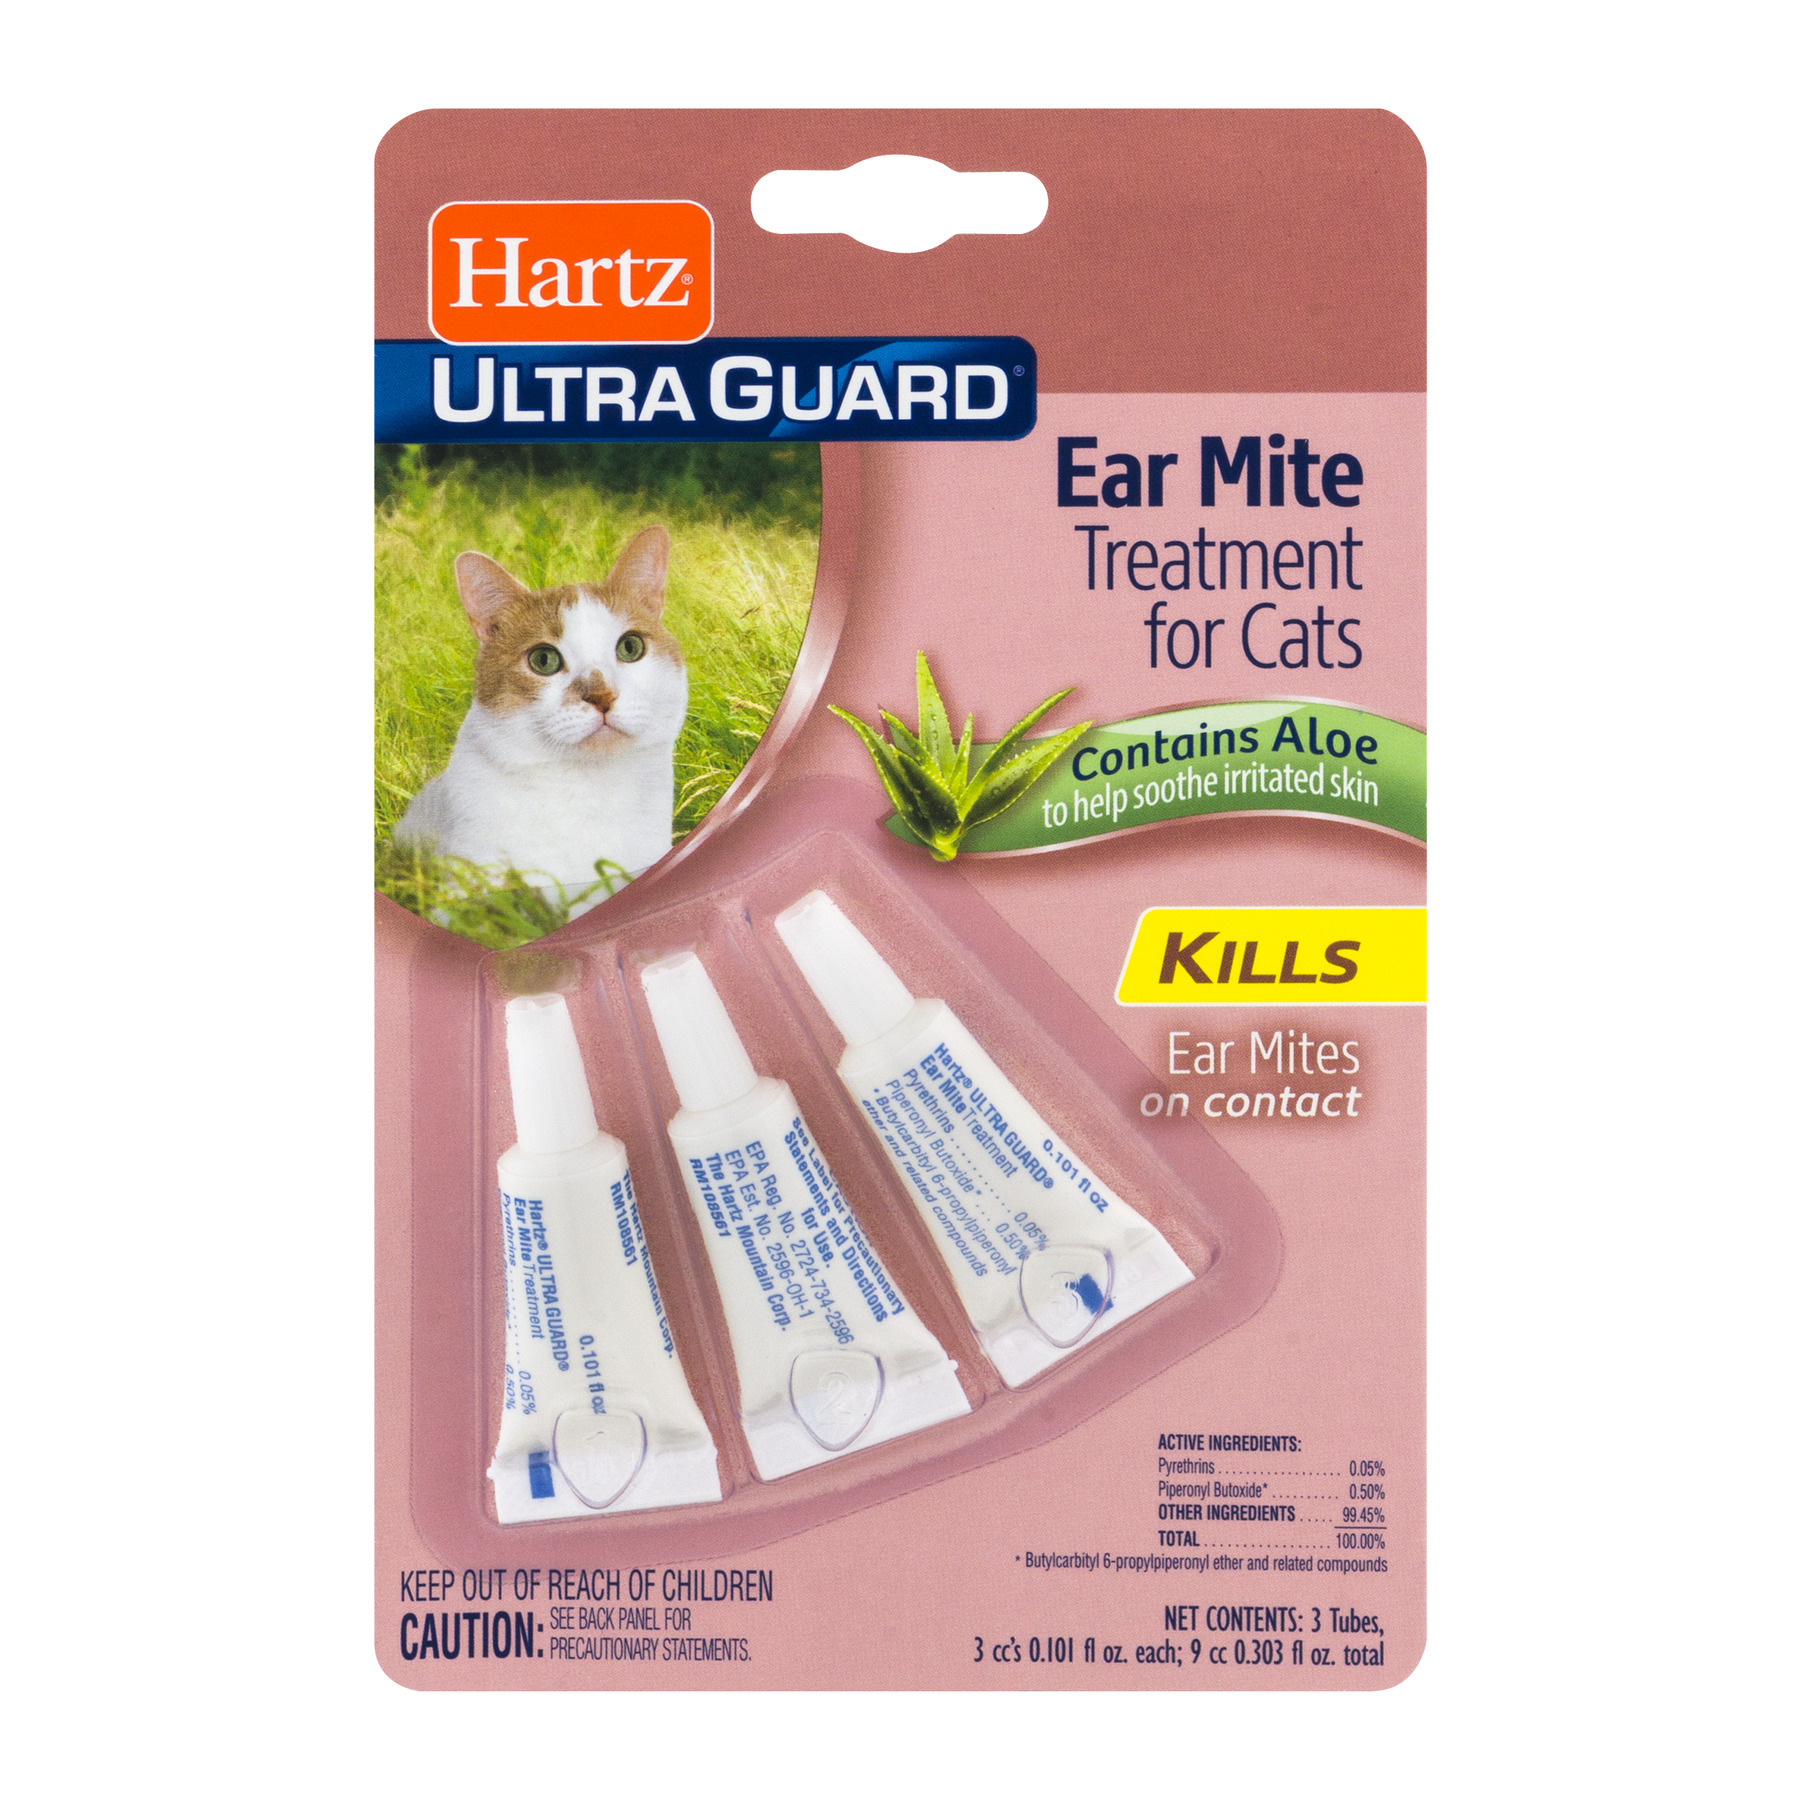 Hartz Ultra Guard Eat Mite Treatment for Cats Contains Aloe, 0.101 FL OZ